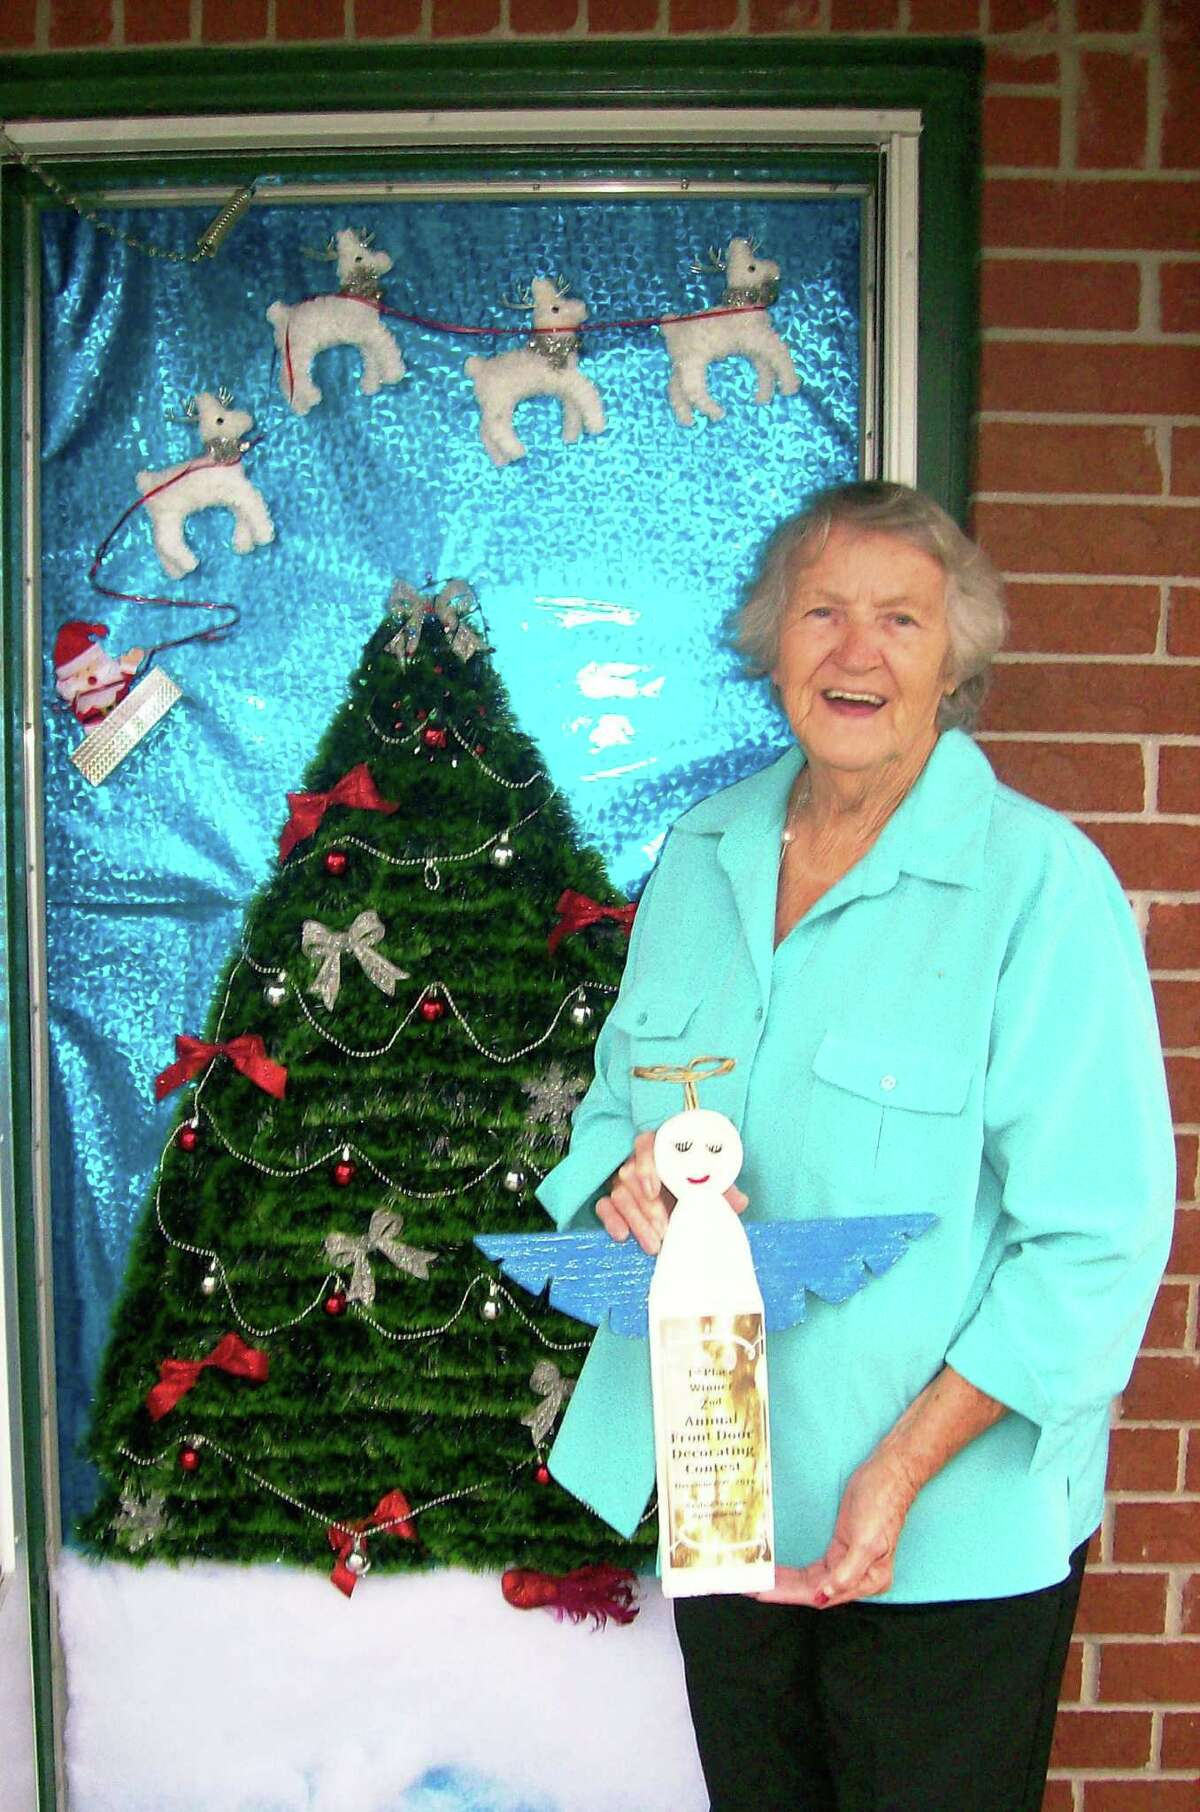 Azalea Terrace residents in Cleveland showed their creativity in a door decorating contest for the Christmas season. In first place was Patsy McMenamy whose apartment door was adorned by a Christmas tree with reindeer flying in the night sky. The contest was judged by Ashleigh Broussard and Vanesa Brashier.